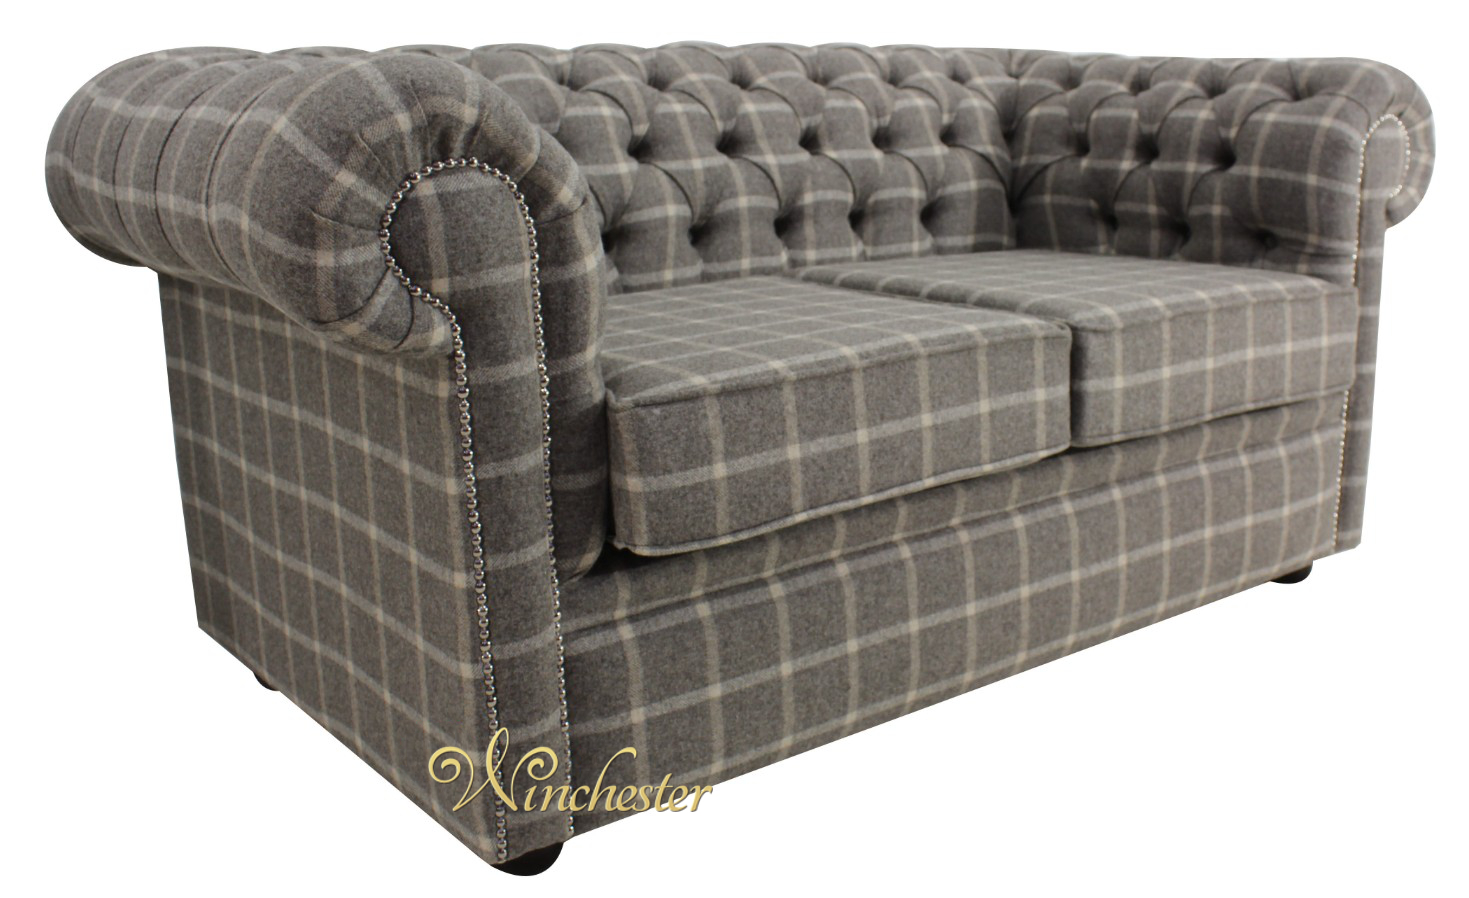 chesterfield arnold wool 2 seater sofa settee reflection